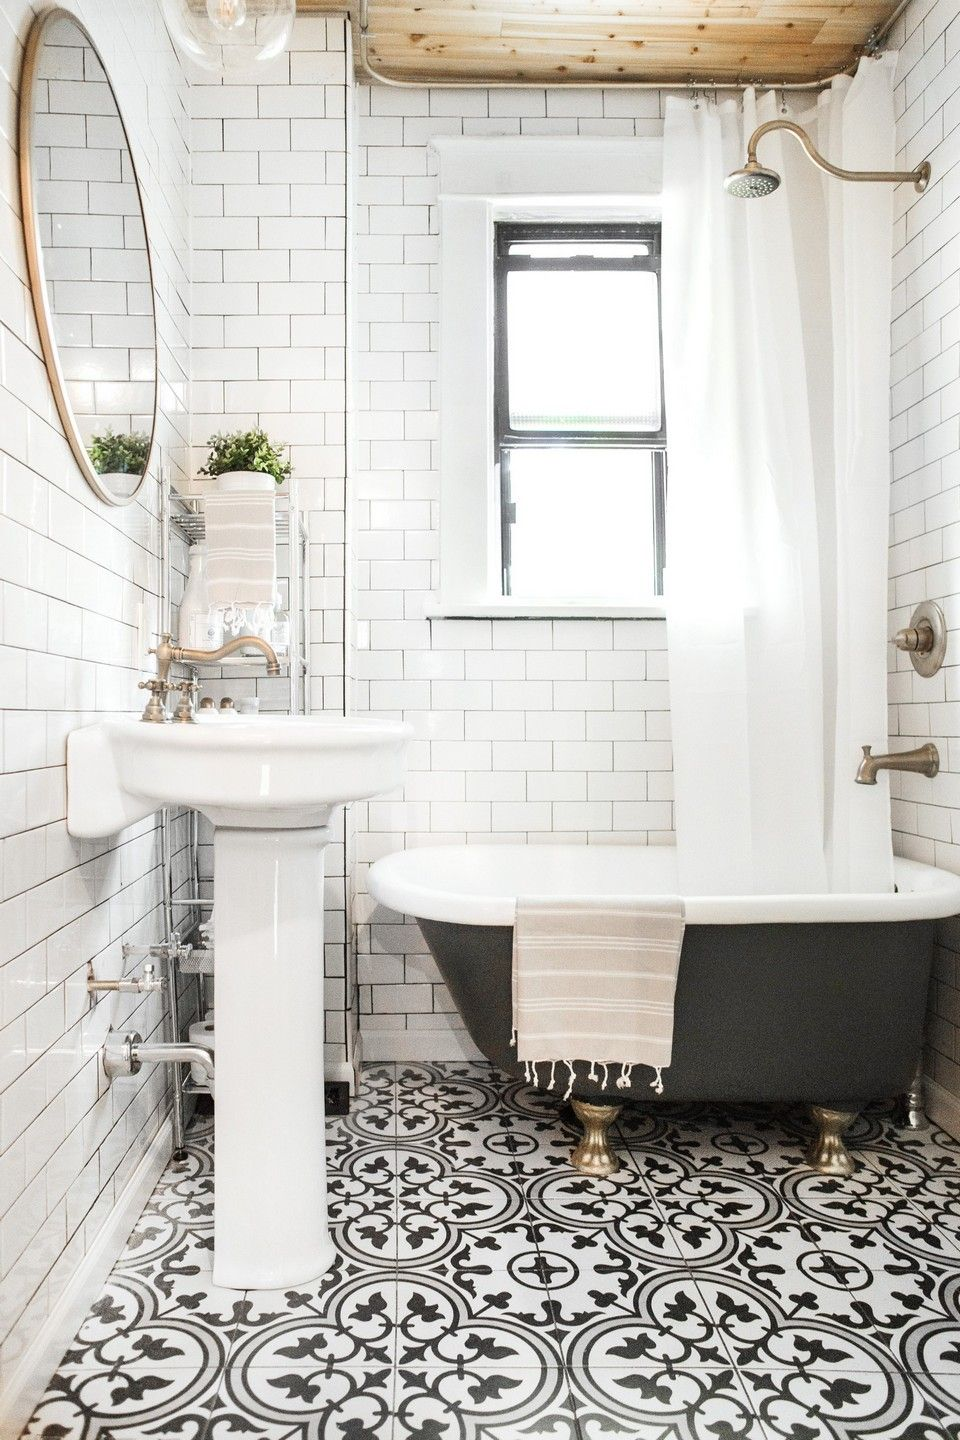 Choosing The Best Shower Curtain, Check It Out! | Pinterest ...